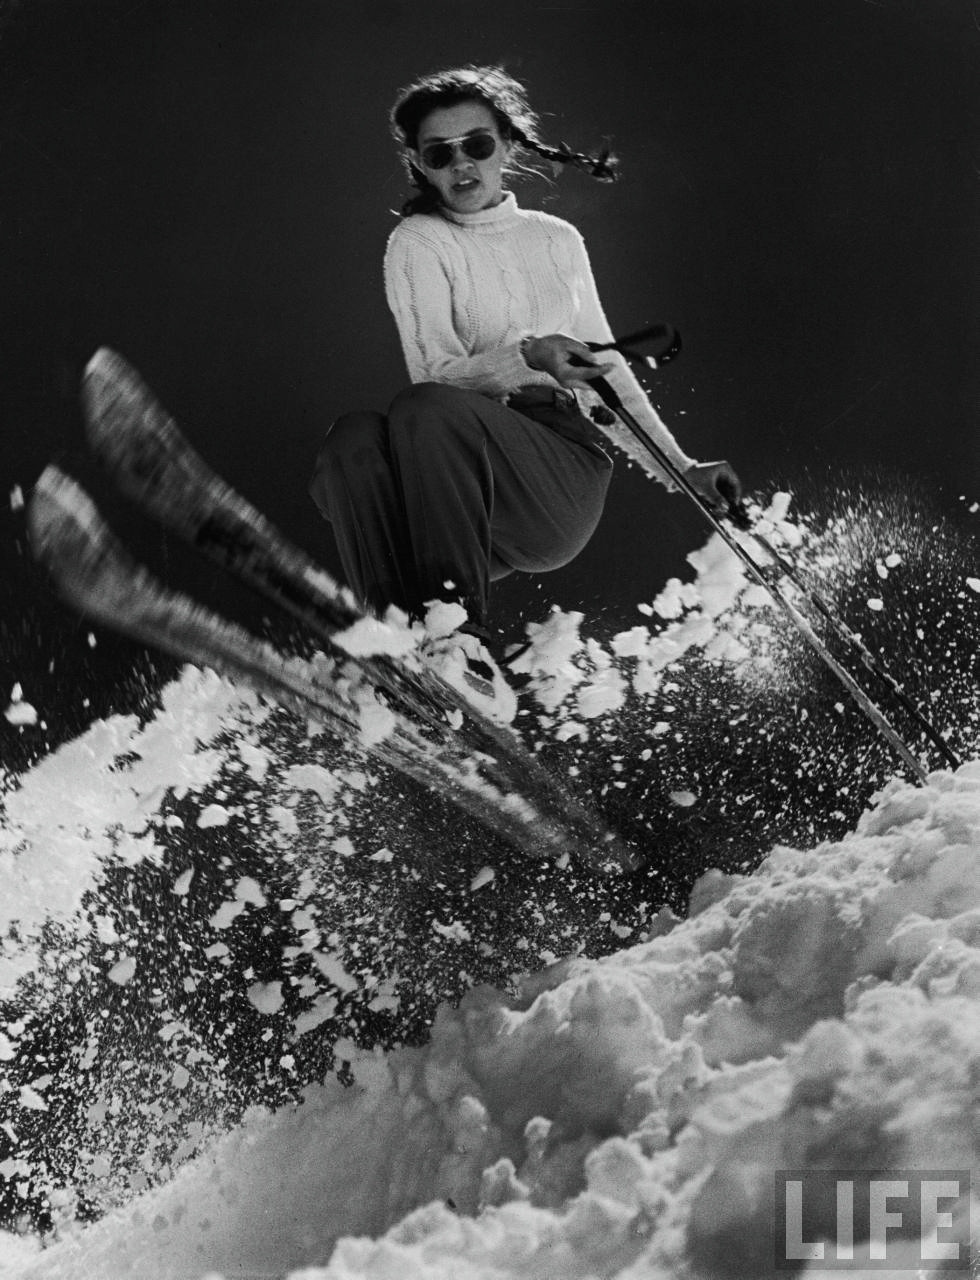 "Two-time Olympic Alpine skiing champion who competed in her first Olympics at age fifteen. A 1947 Life magazine profile stated ""her only interest in boys is how well they ski""-  After retiring from the sport, Mead Lawrence became a passionate conservationist, founding the Andrea Lawrence Institute for Mountain and Rivers to protect the Sierra Nevada mountain range."